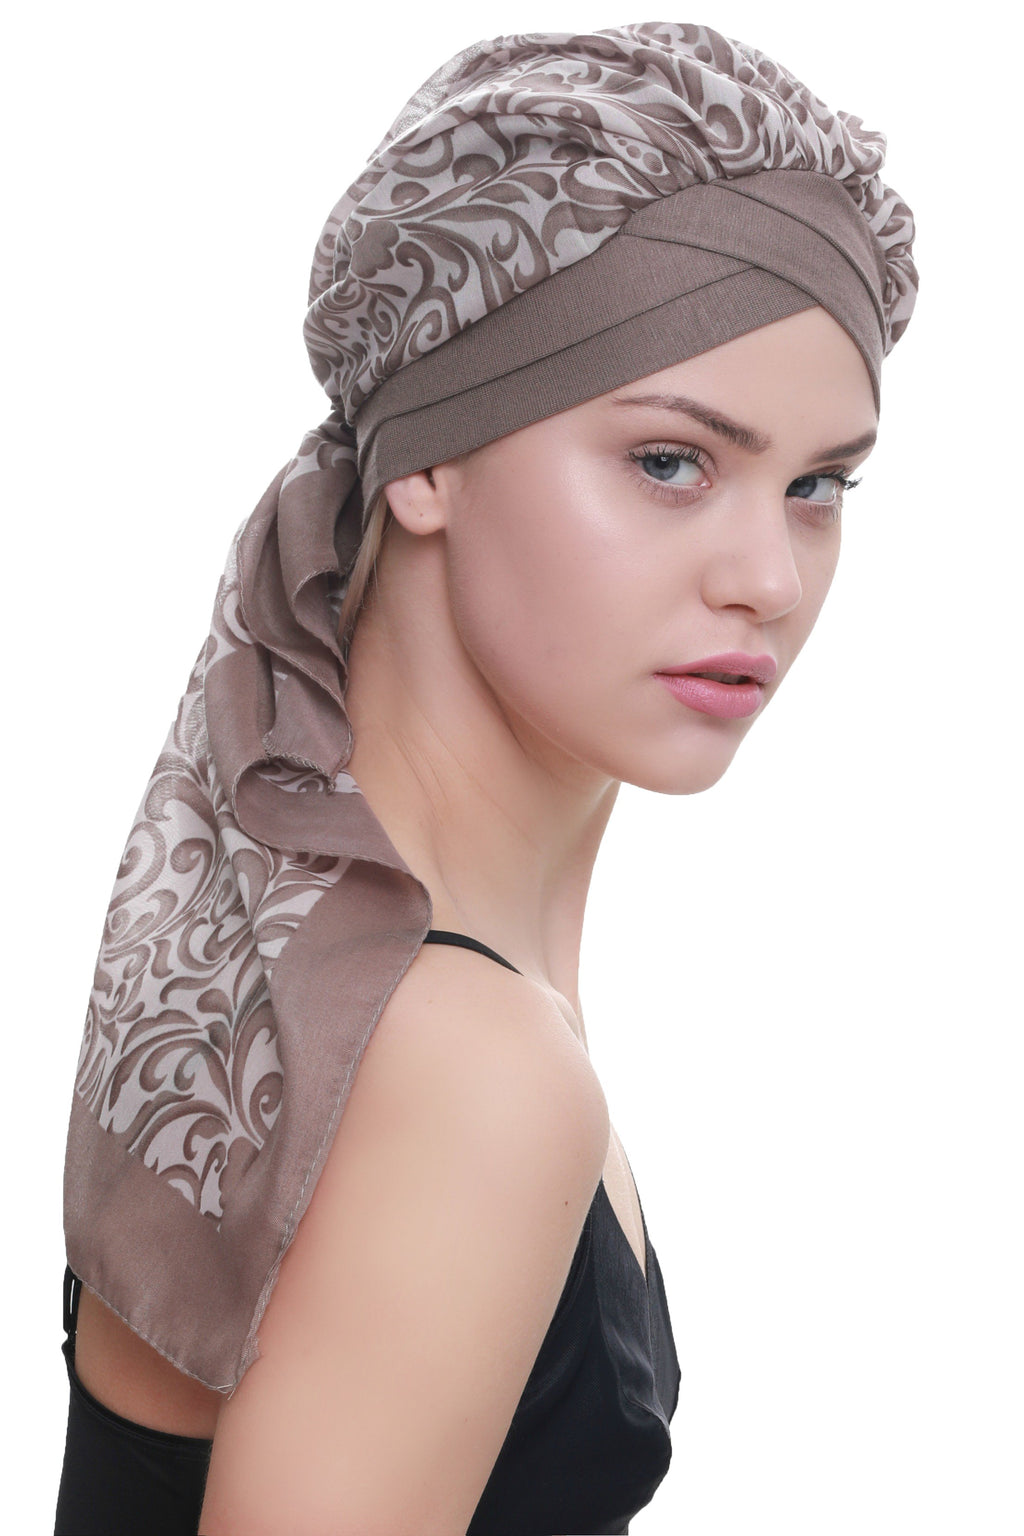 Deresina W cap with attached chemo headscarf mink paisley